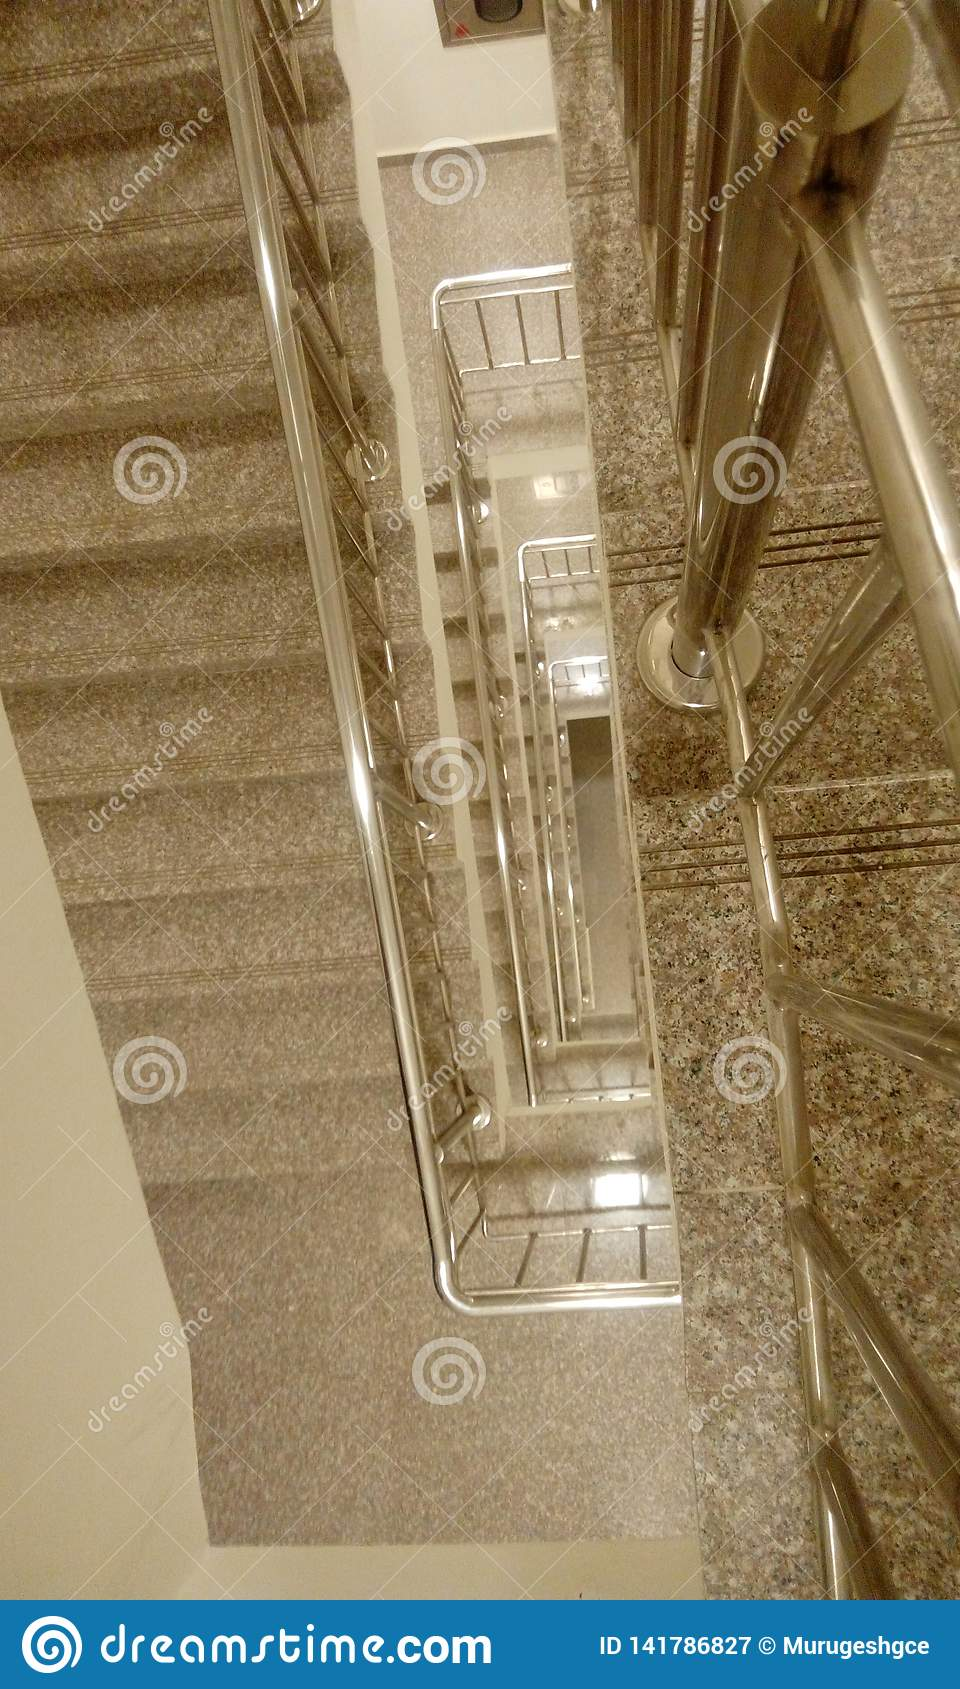 Top view of high rise building staircase with tred and risers